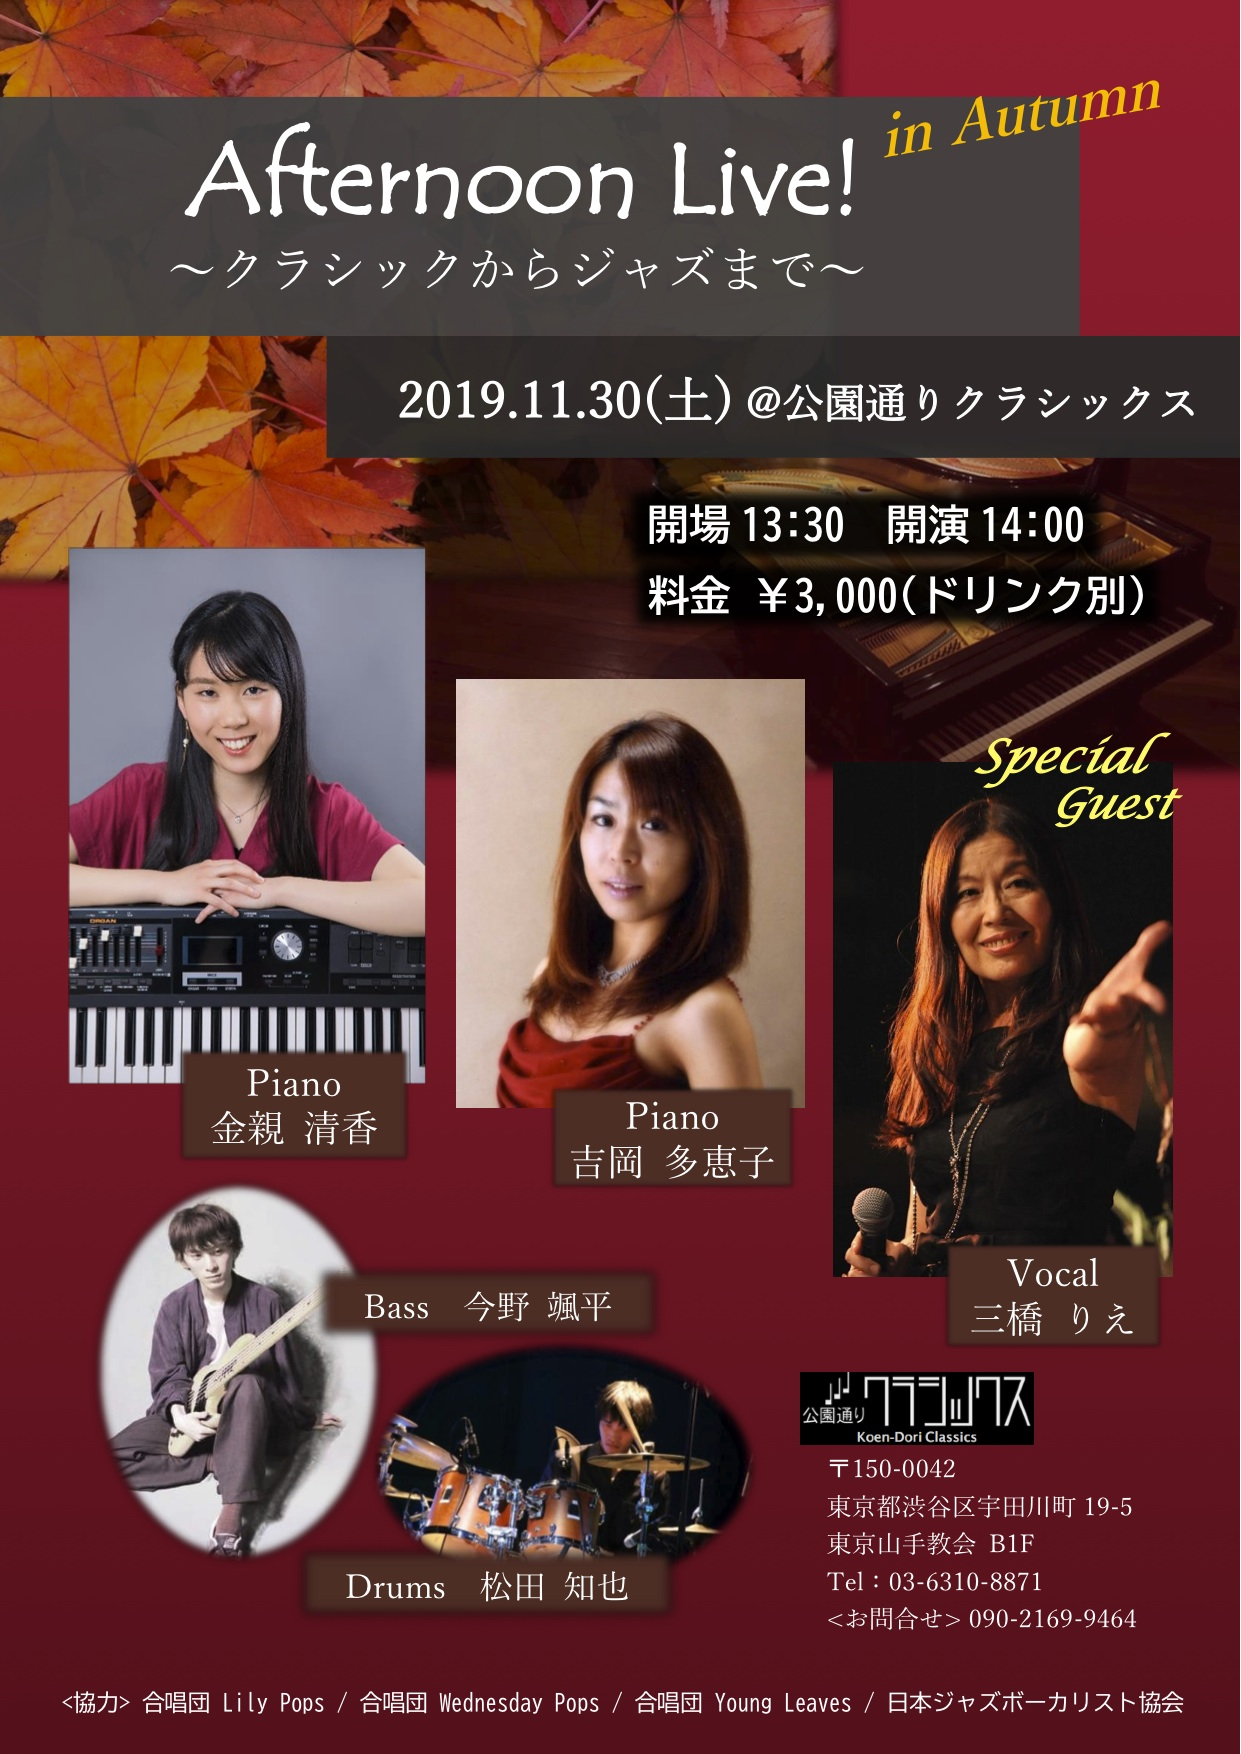 Afternoon Live! in Autumn 〜クラシックからジャズまで〜